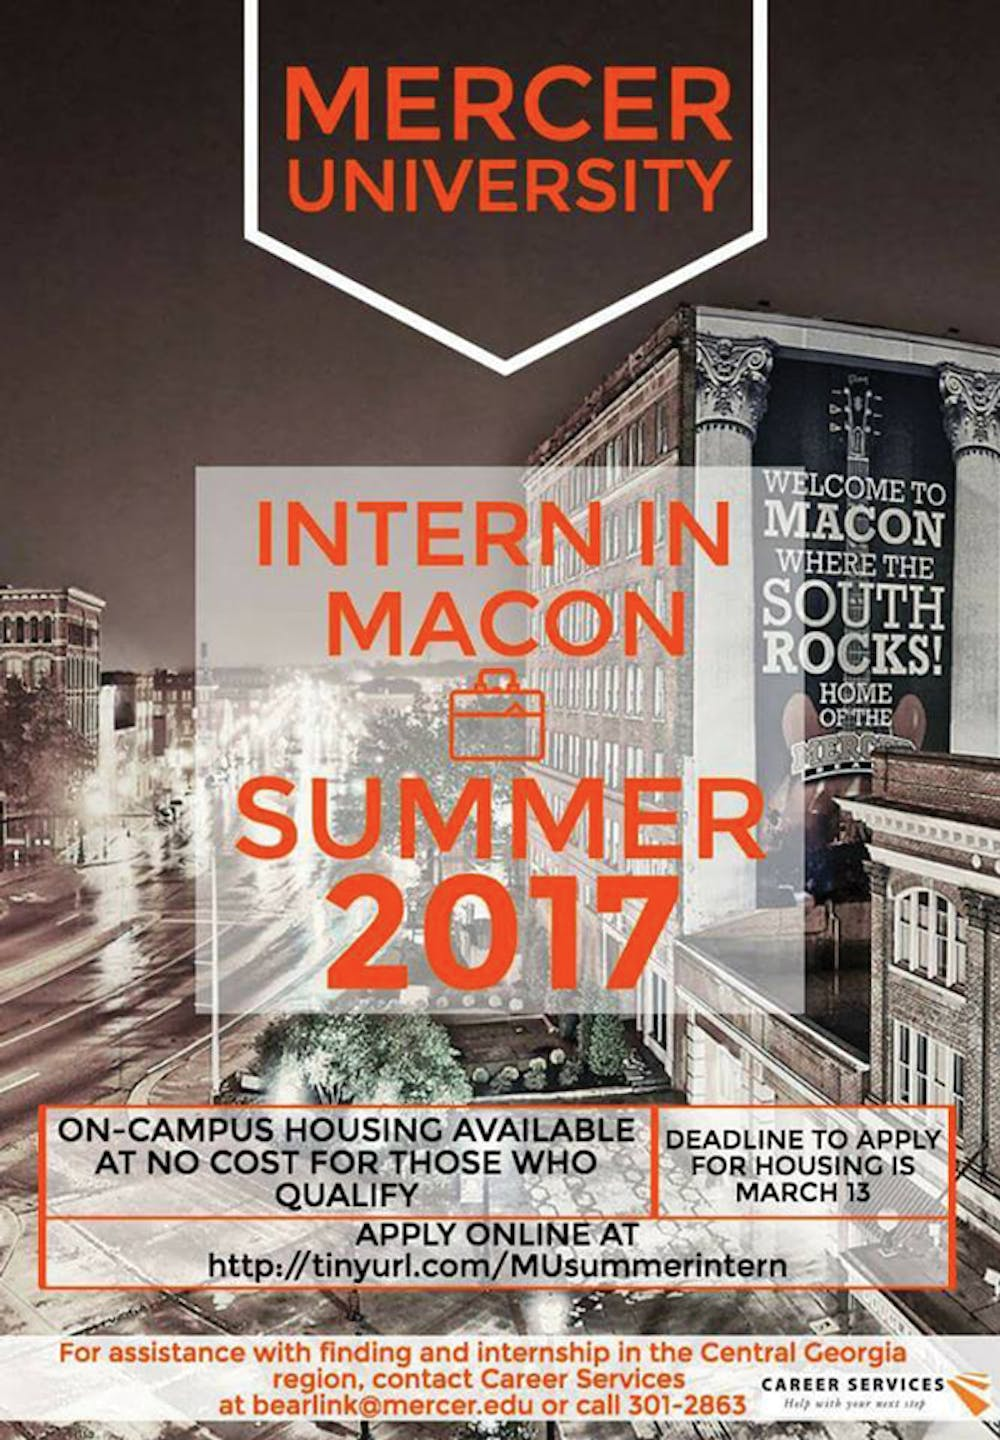 The Student Government Association, in partnership with Career Services, created a flier to send to students to advertise summer internship opportunites in Macon.